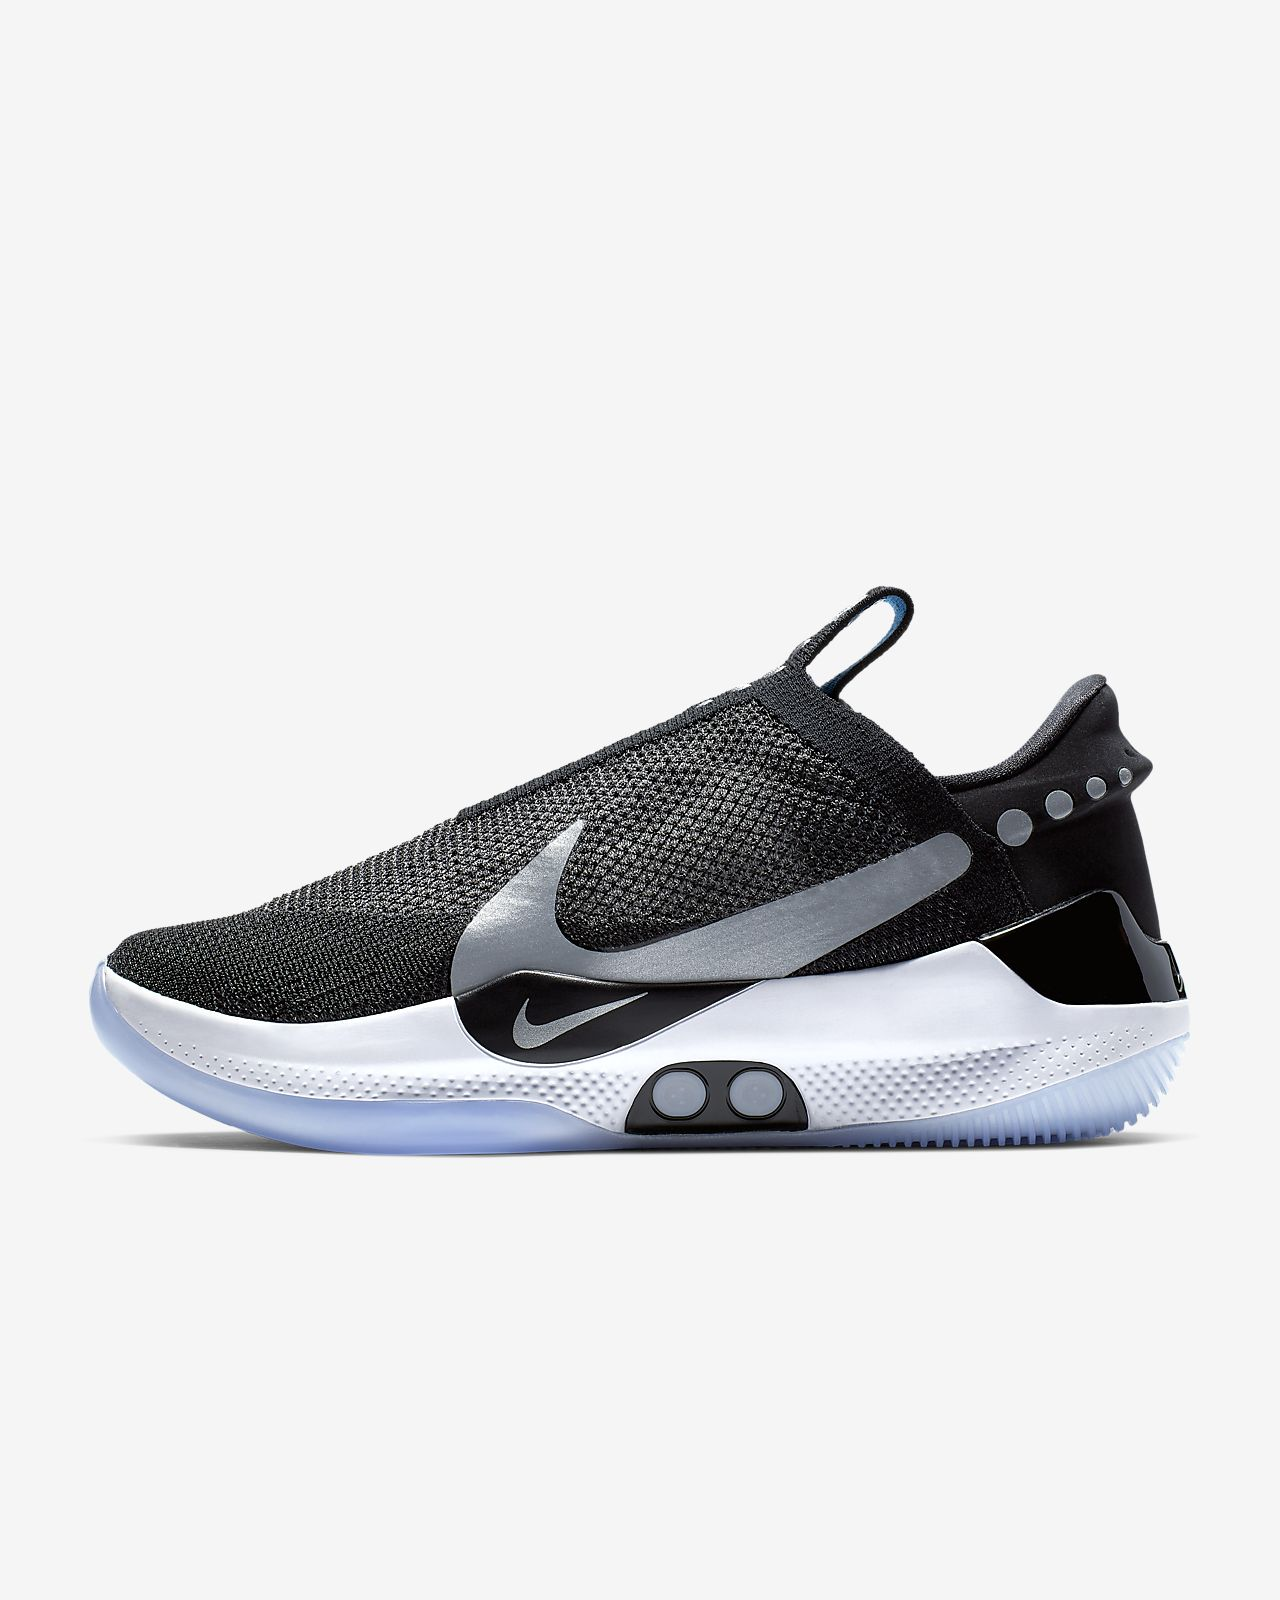 Nike Adapt BB Basketball Shoe